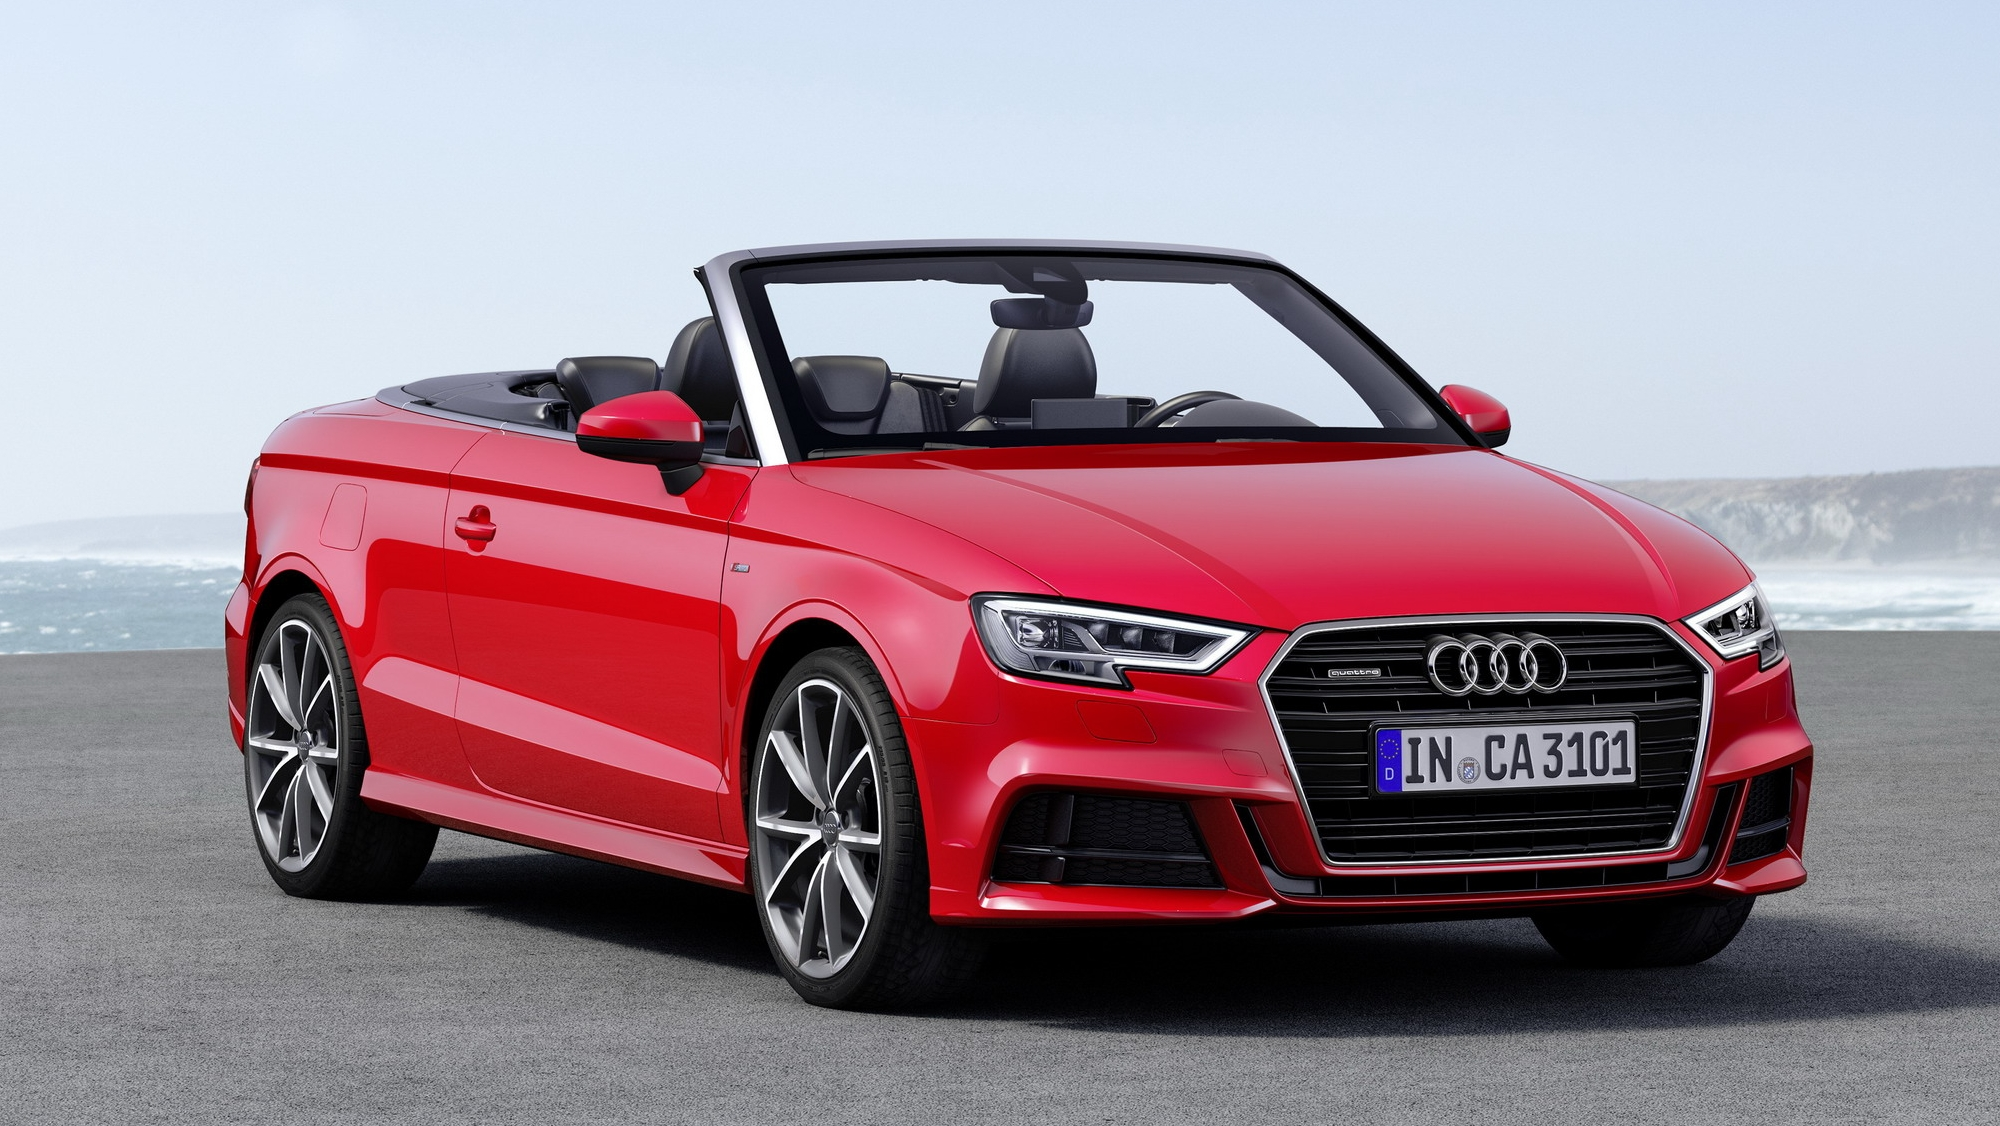 2017 - 2018 Audi A3 Convertible | Top Speed